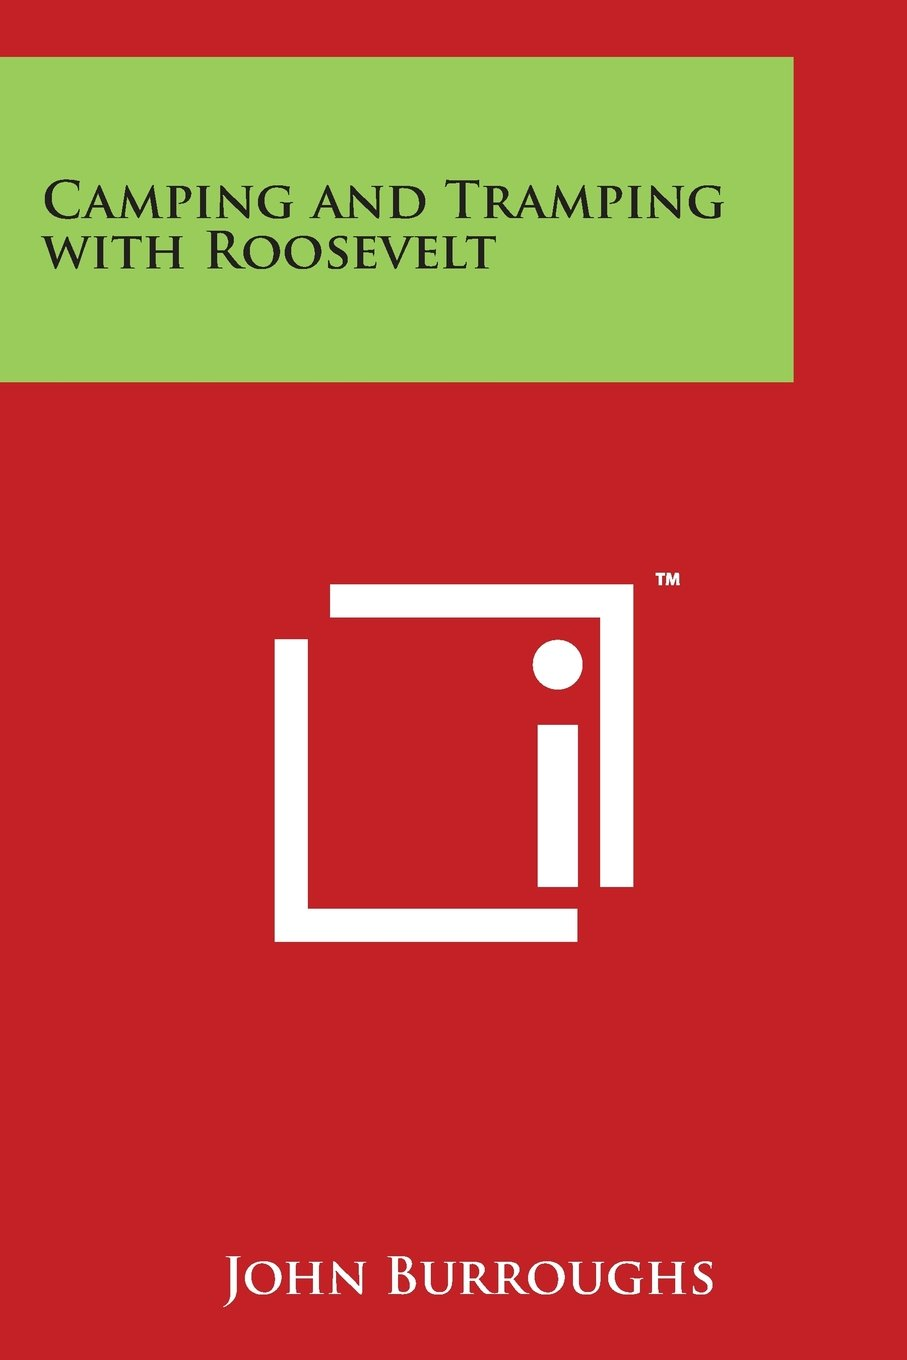 Camping and Tramping with Roosevelt PDF